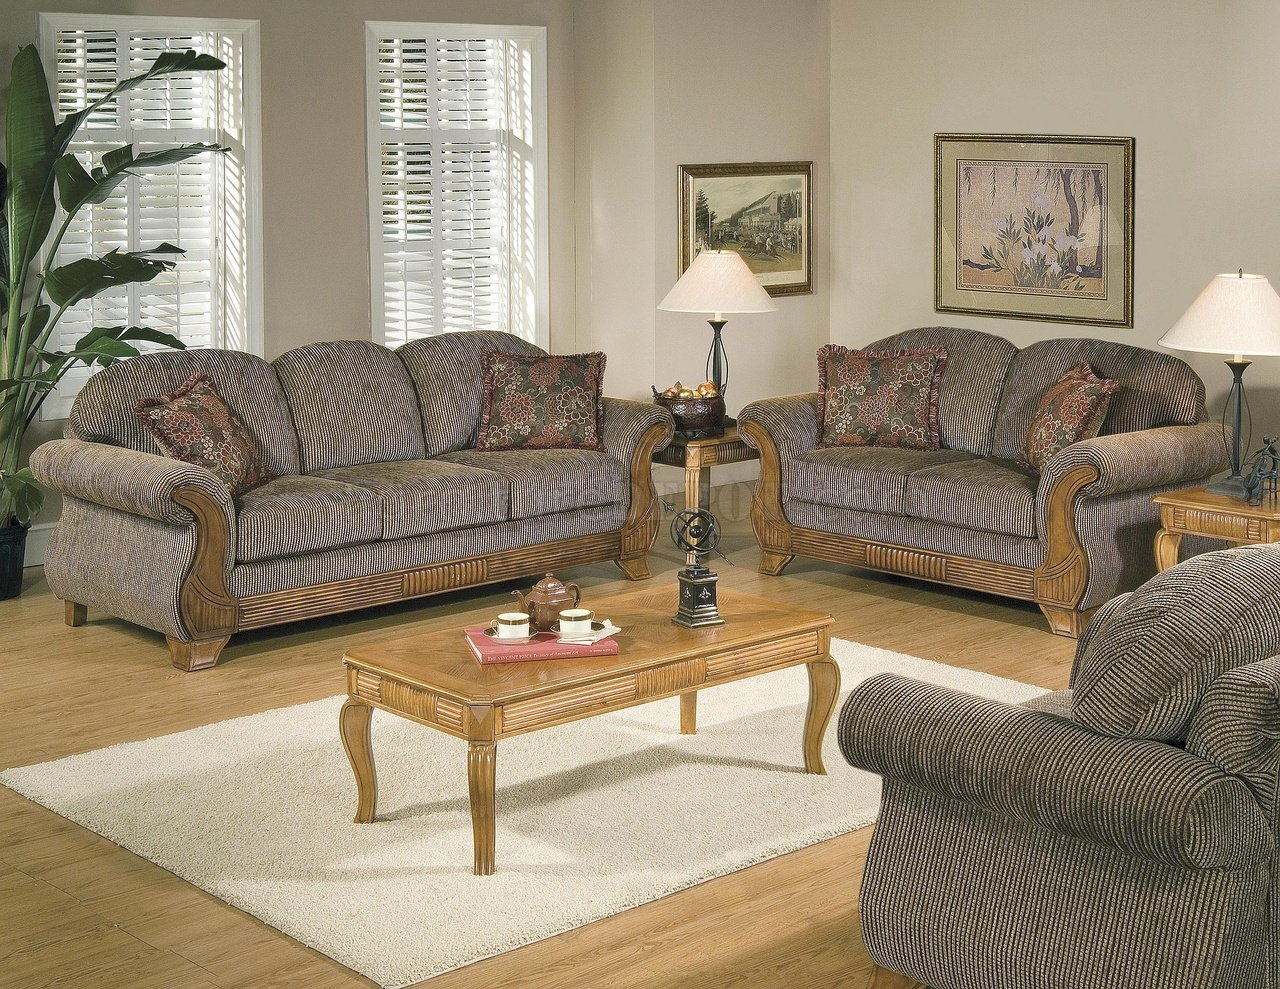 Traditional Striped Fabric Wood Trim Living Room